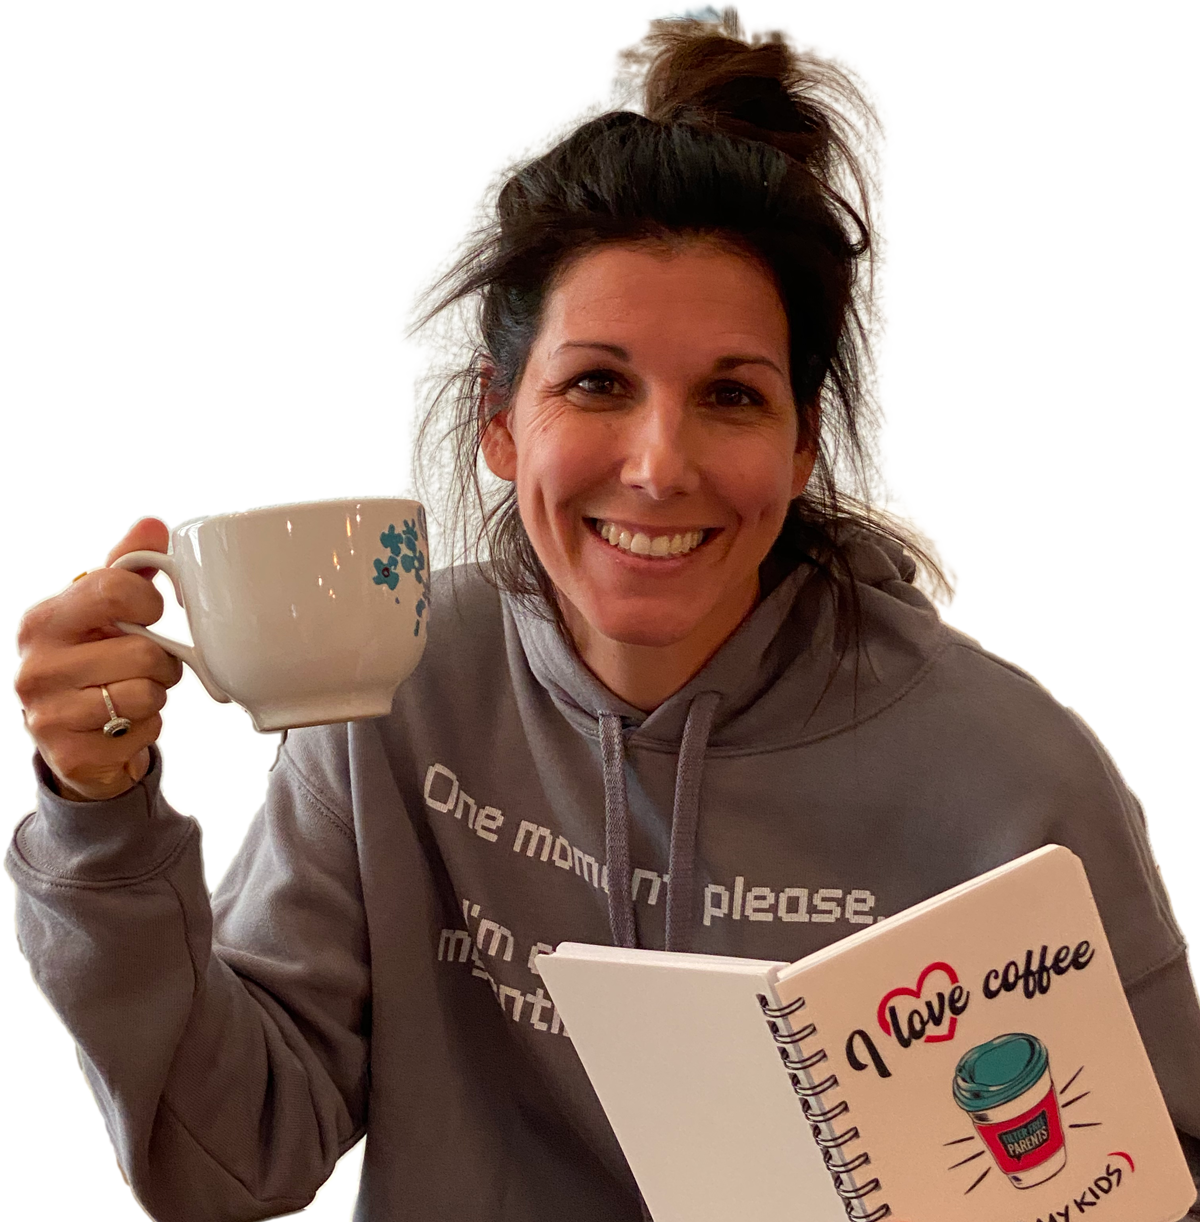 Meredith Masony drinking coffee with her 'I Love Coffee + my kids' notebook in 'one moment please' cropped Hoodie from her official merch line with Bonfire